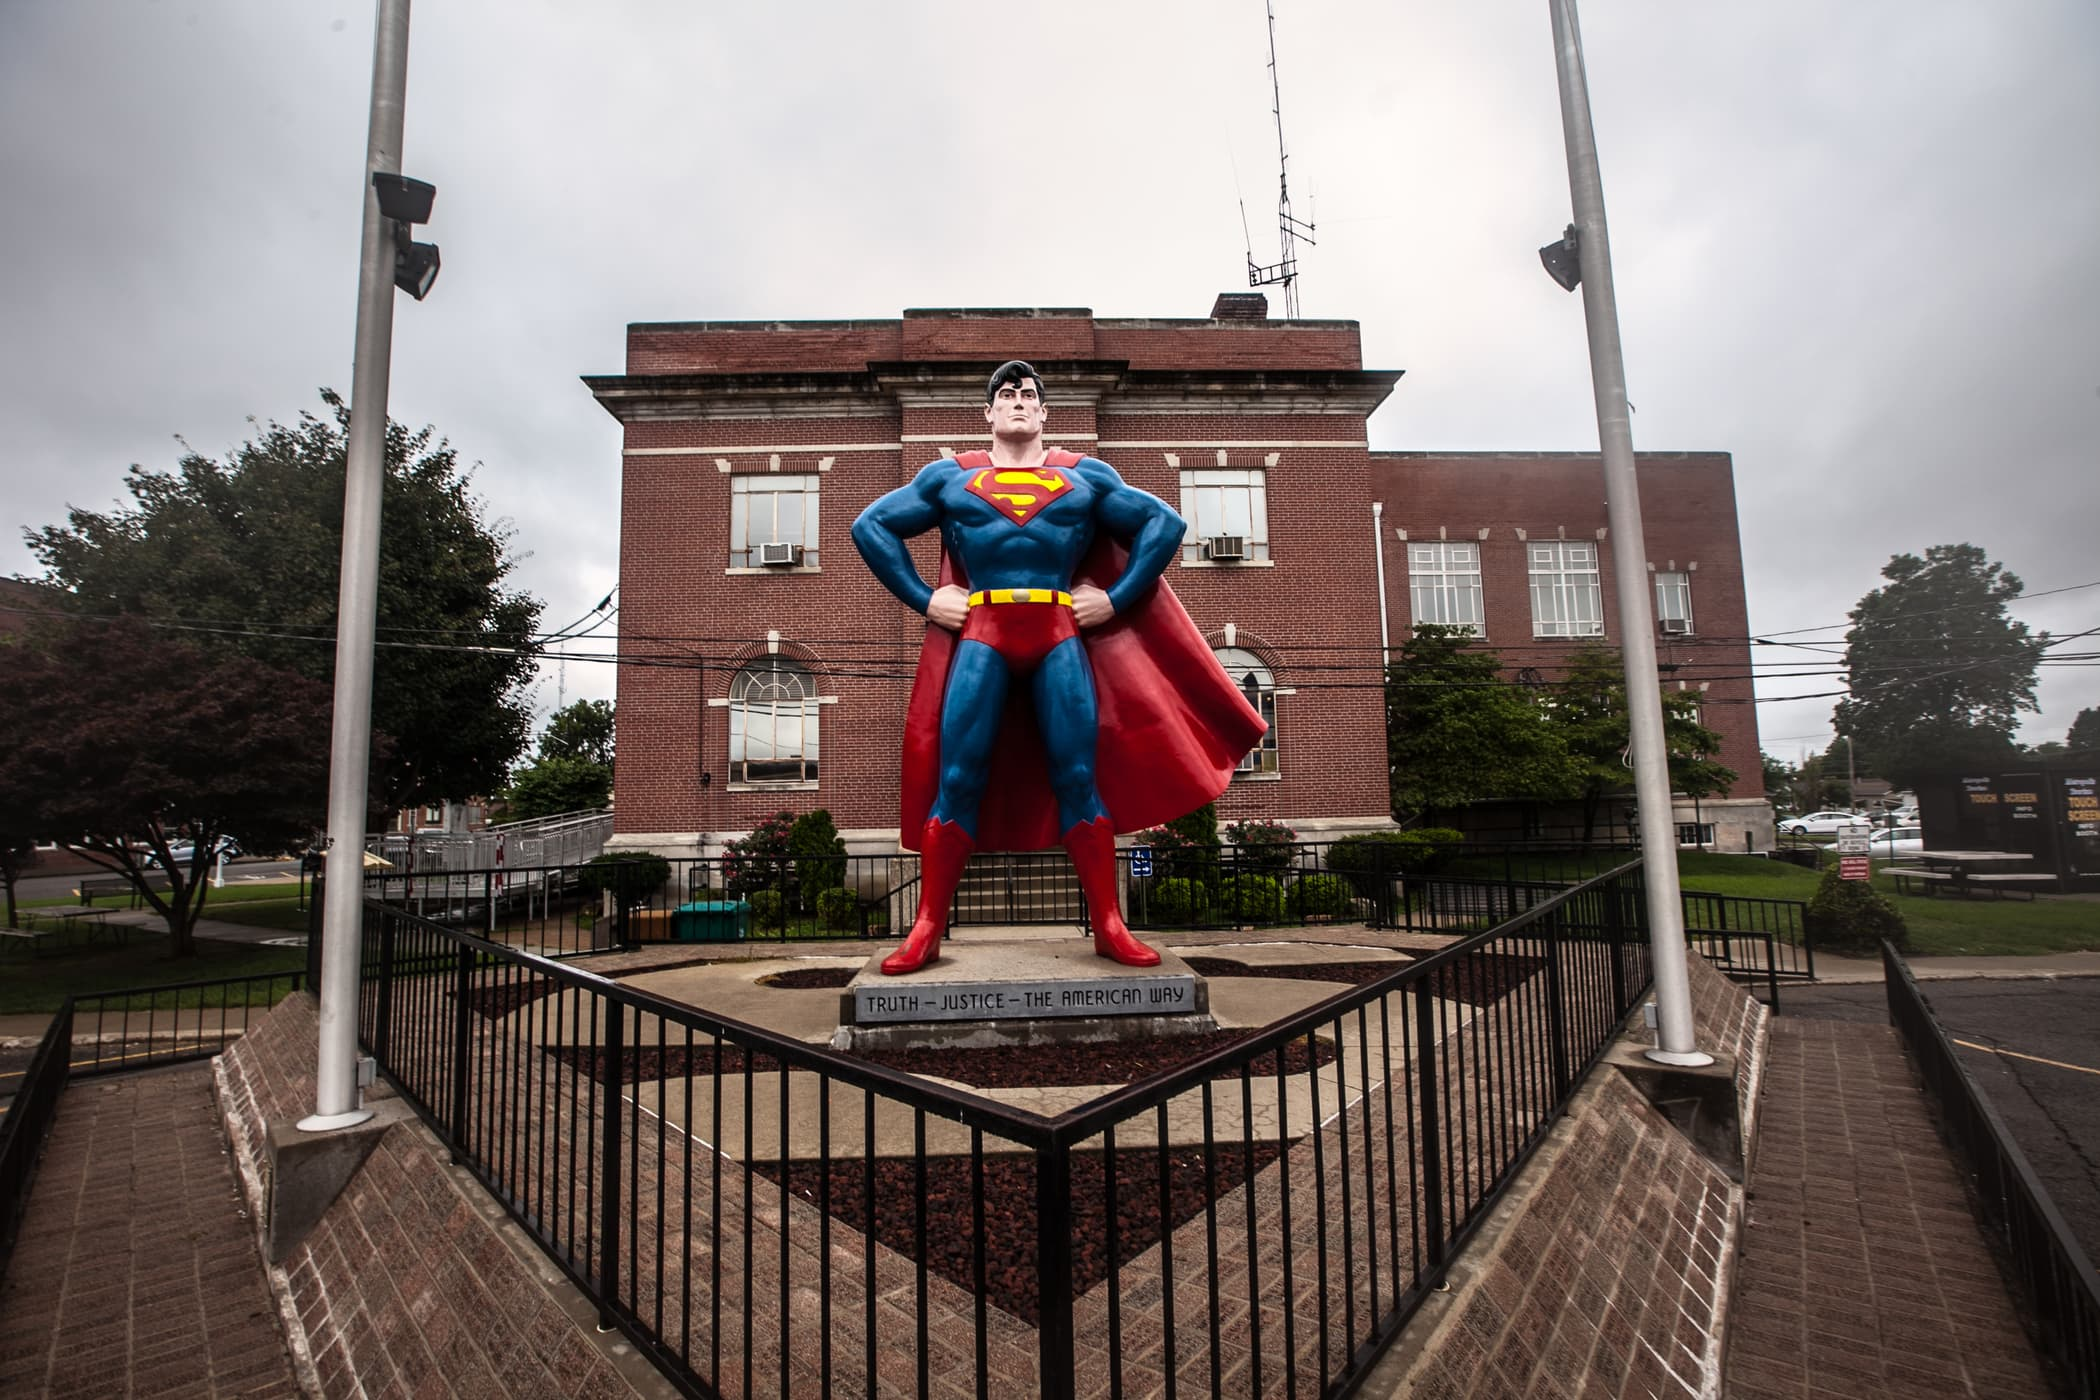 Best Illinois roadside attractions: Giant Superman Statue in Metropolis, Illinois. Visit this roadside attraction on an Illinois road trip with kids or weekend getaway with friends. Add the Giant Superman Statue to your road trip bucket list and visit them on your next travel adventure.